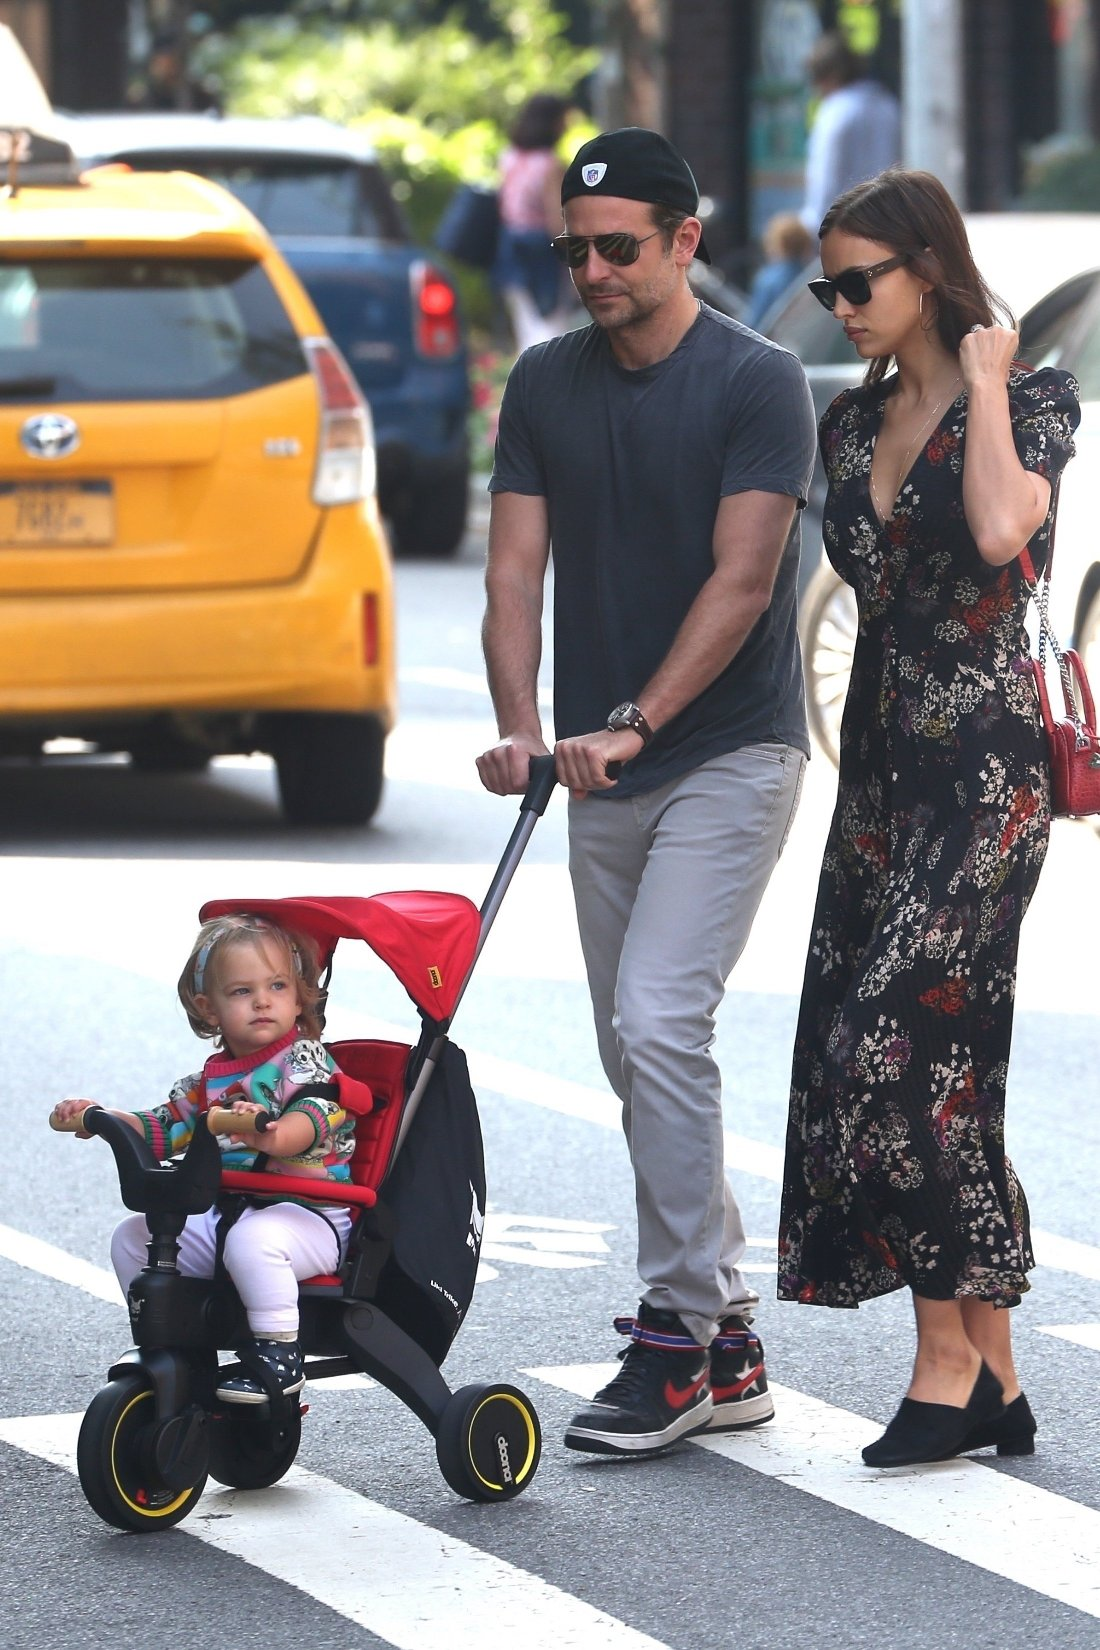 New York, NY  - Bradley Cooper and Irina Shayk look like normal parents out on the streets of the